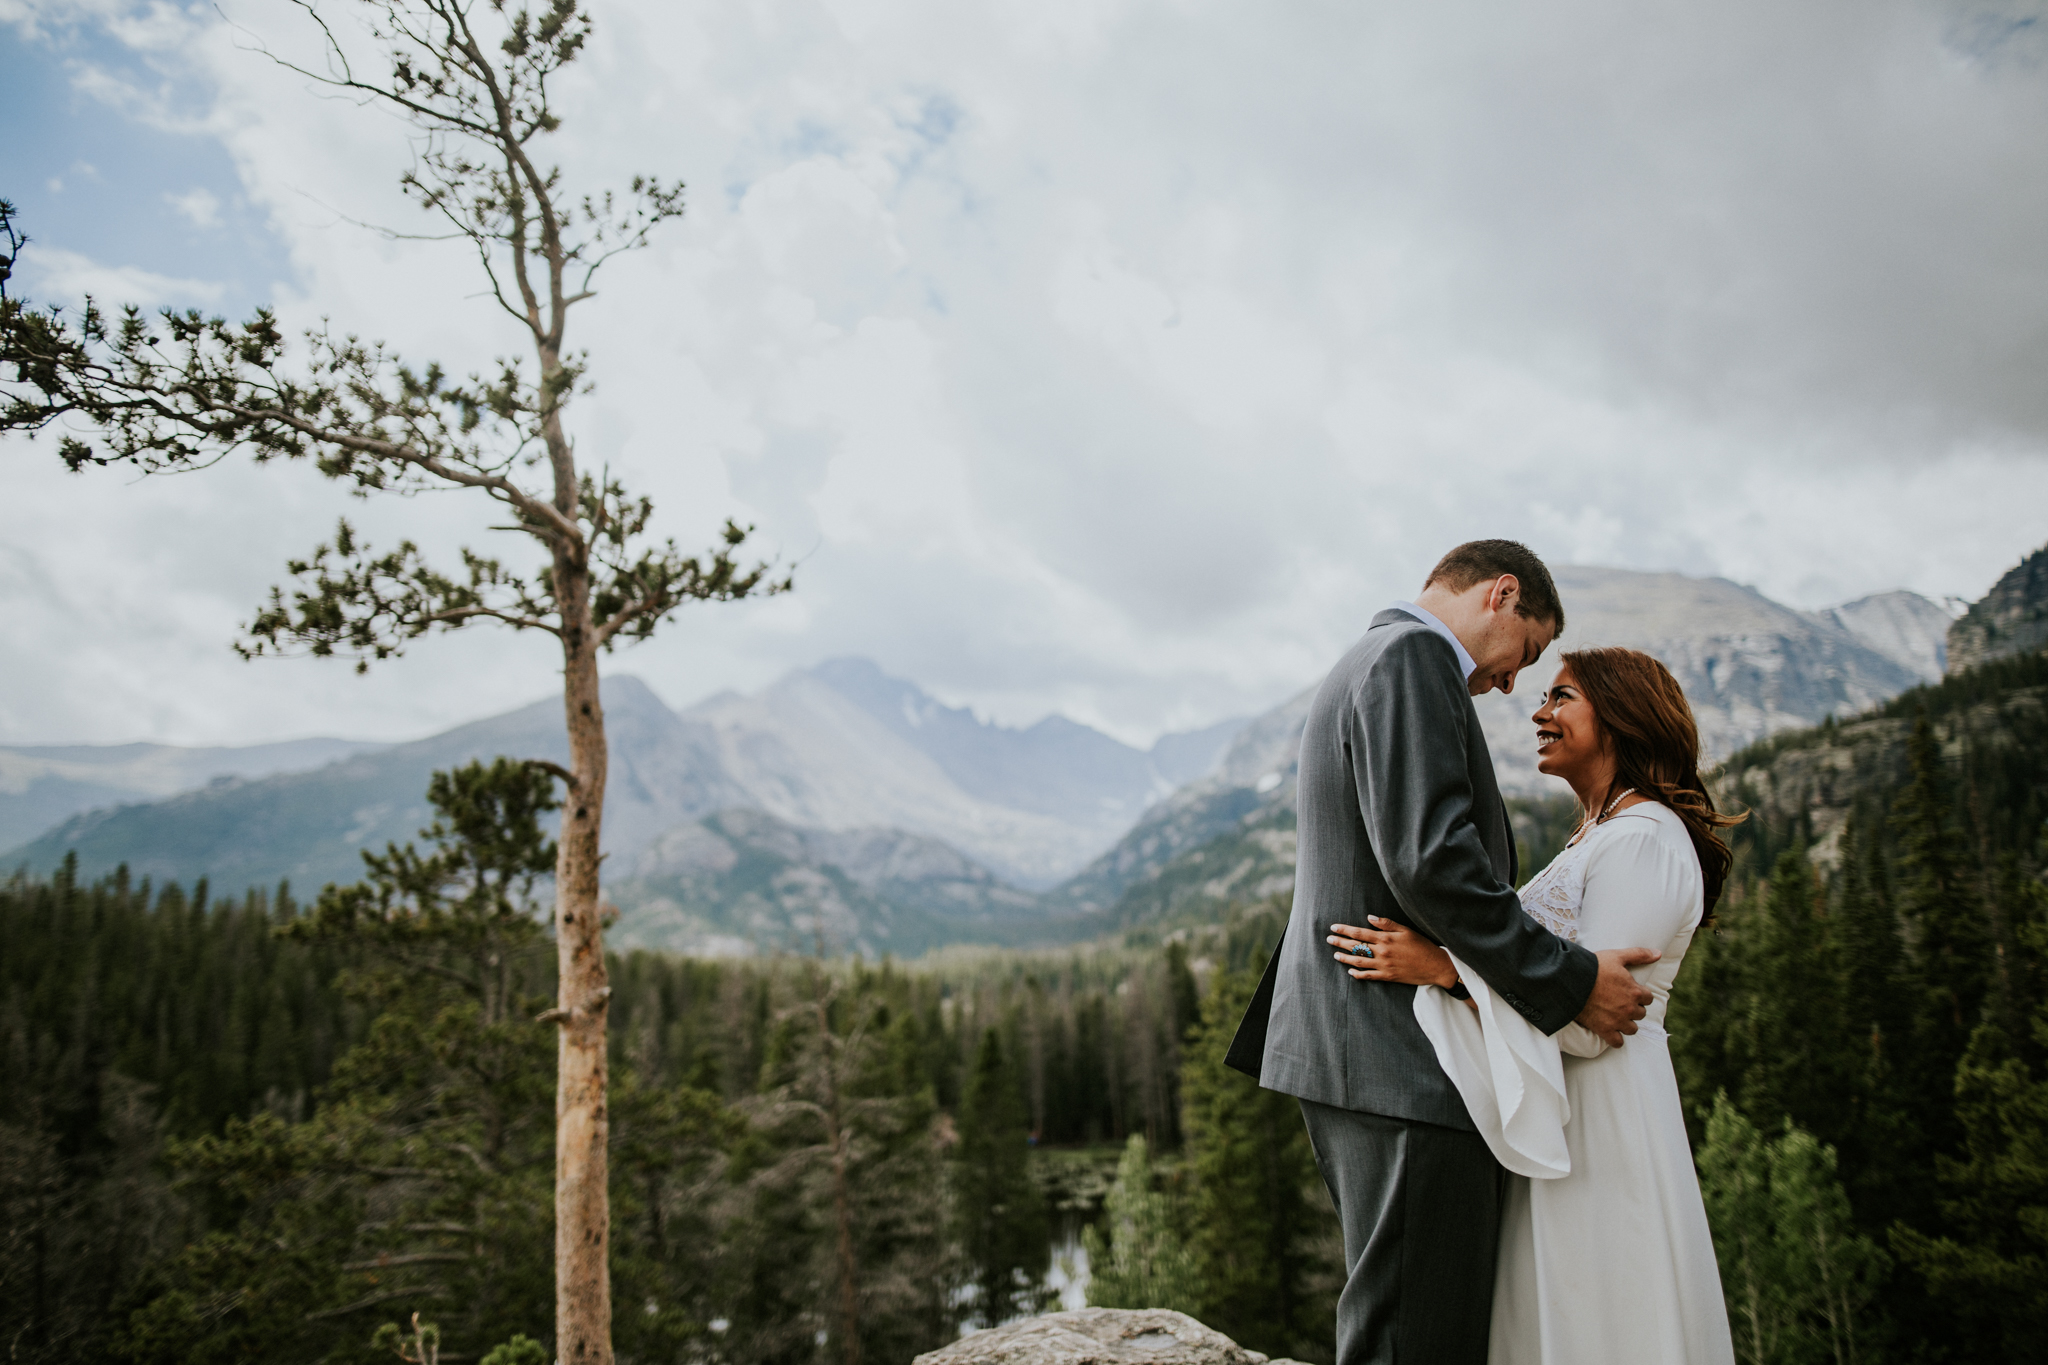 Destination Elopement Photographer - Vow of the Wild - Rocky Mountain National Park - Forest Elopement - Nymph Lake